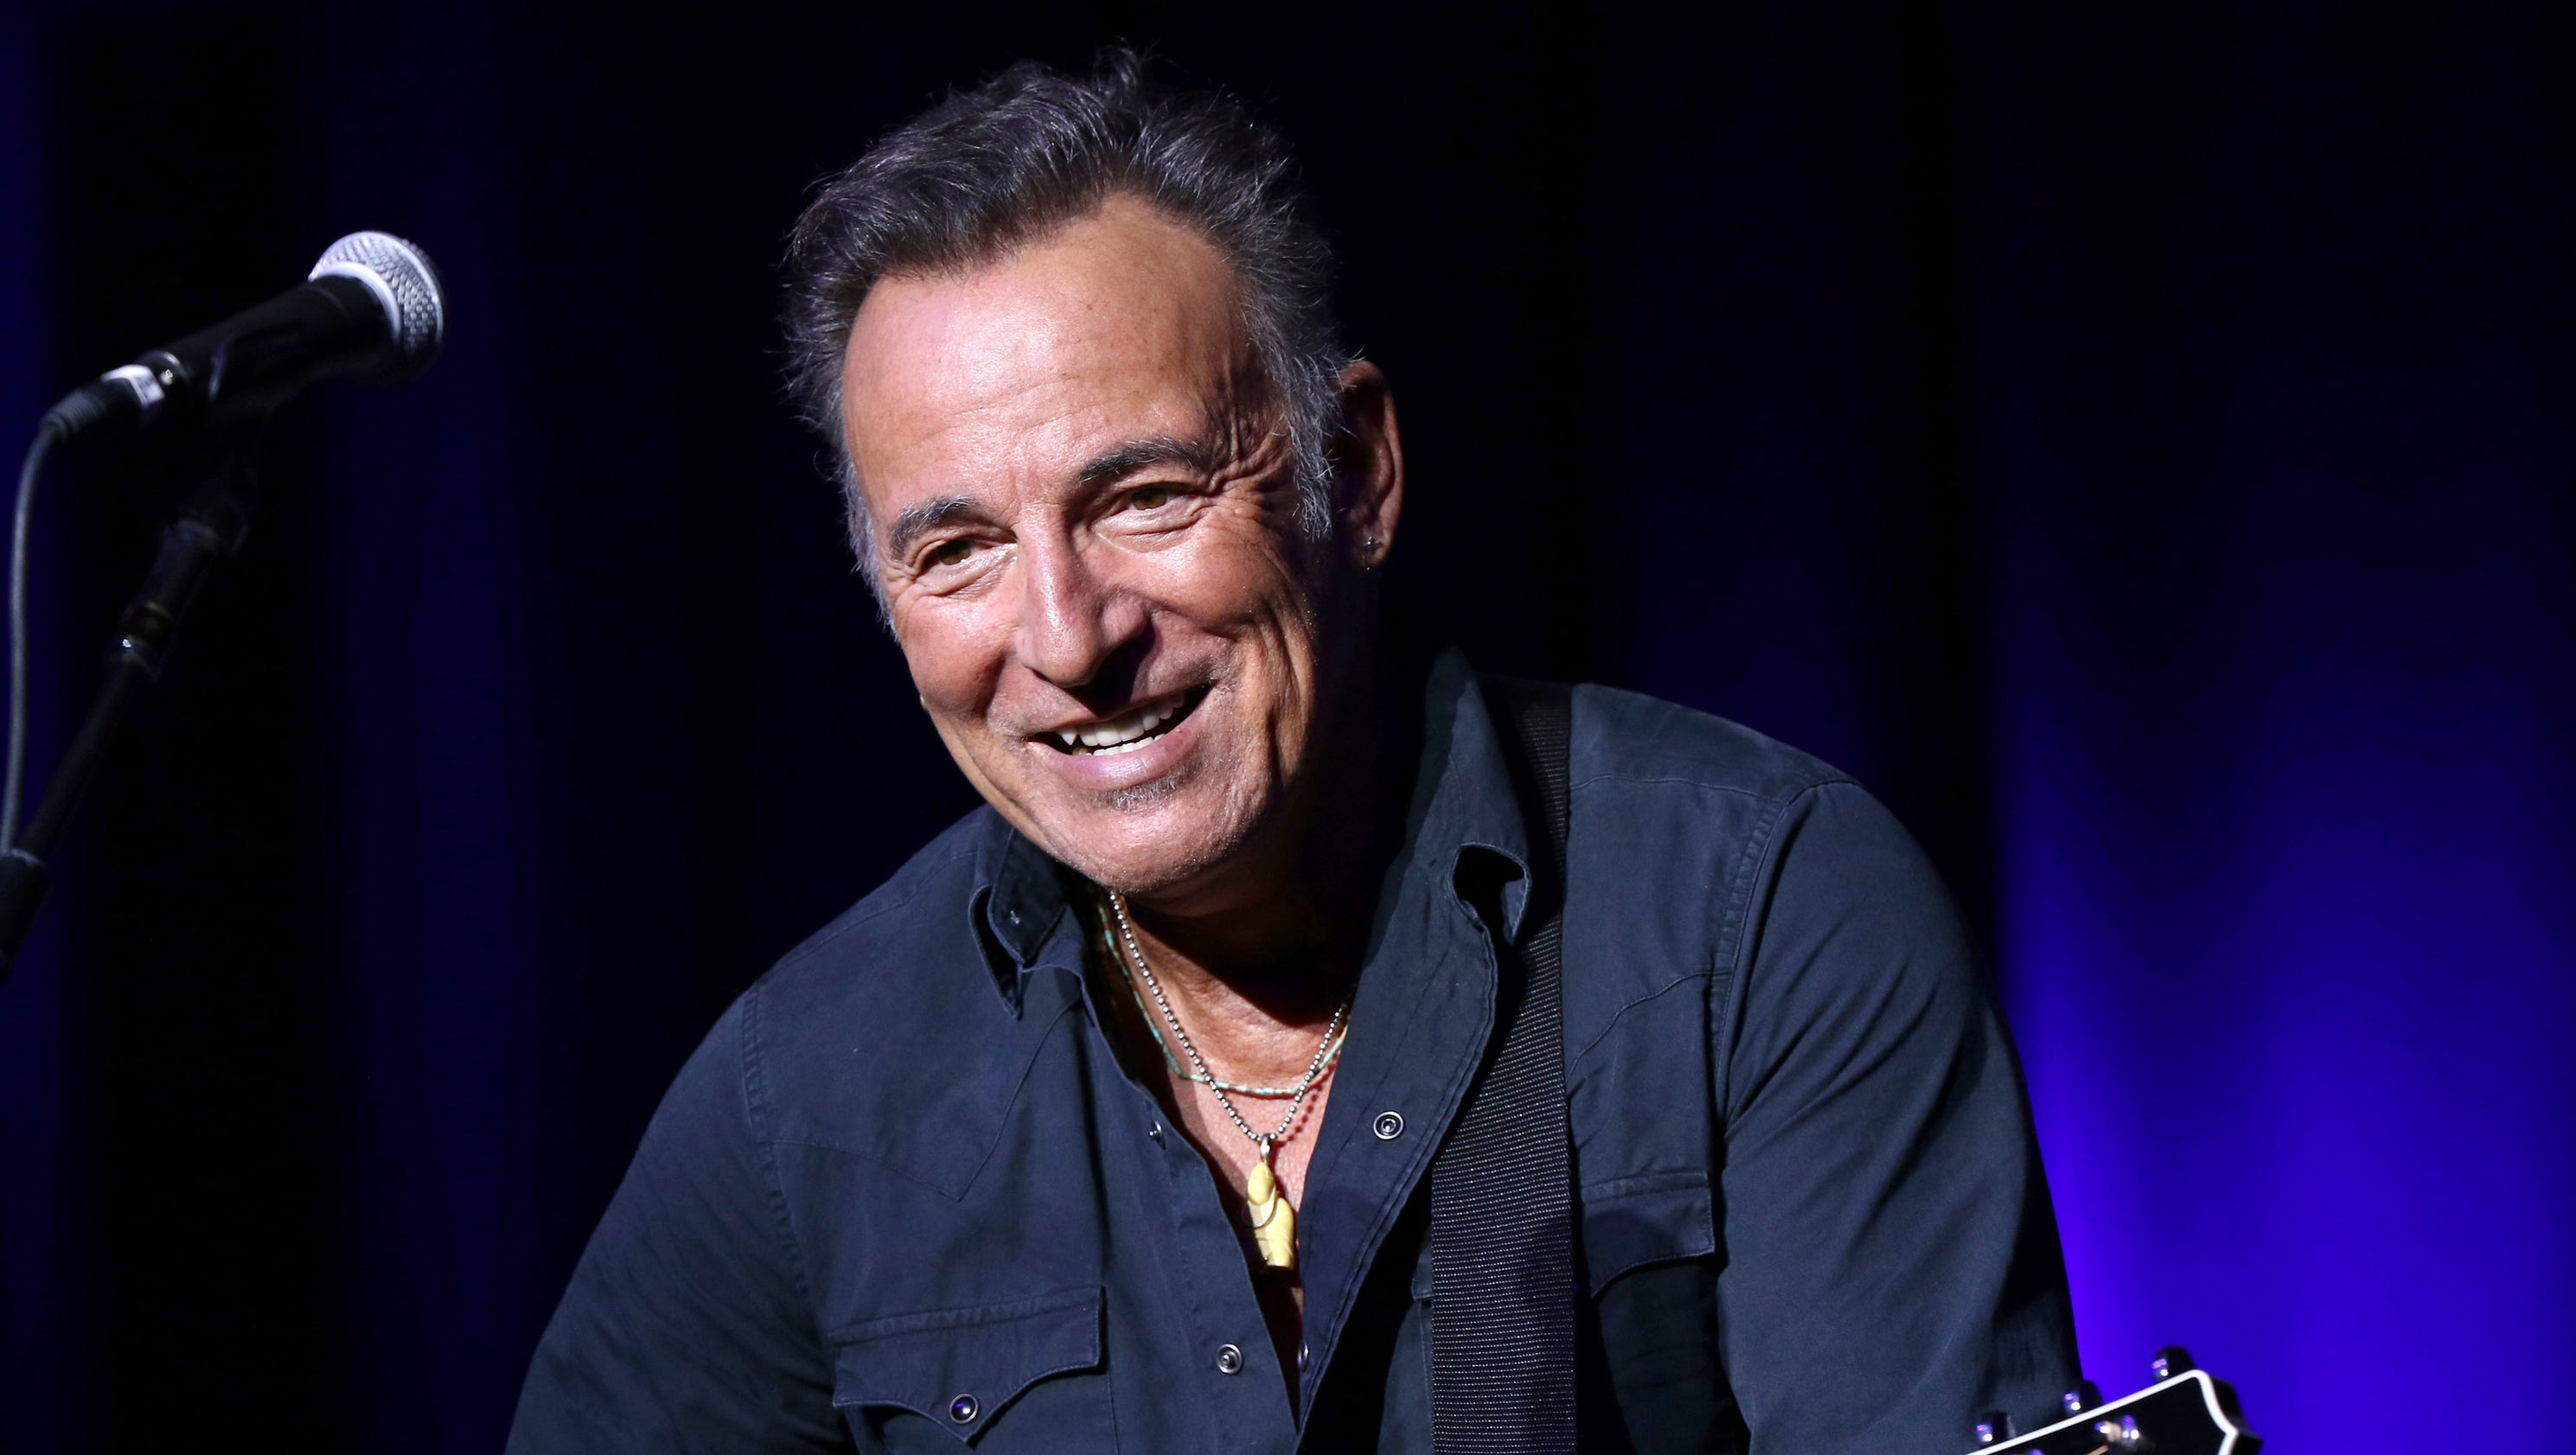 Springsteen on Broadway Tickets appear on Stubhub for over $6 000